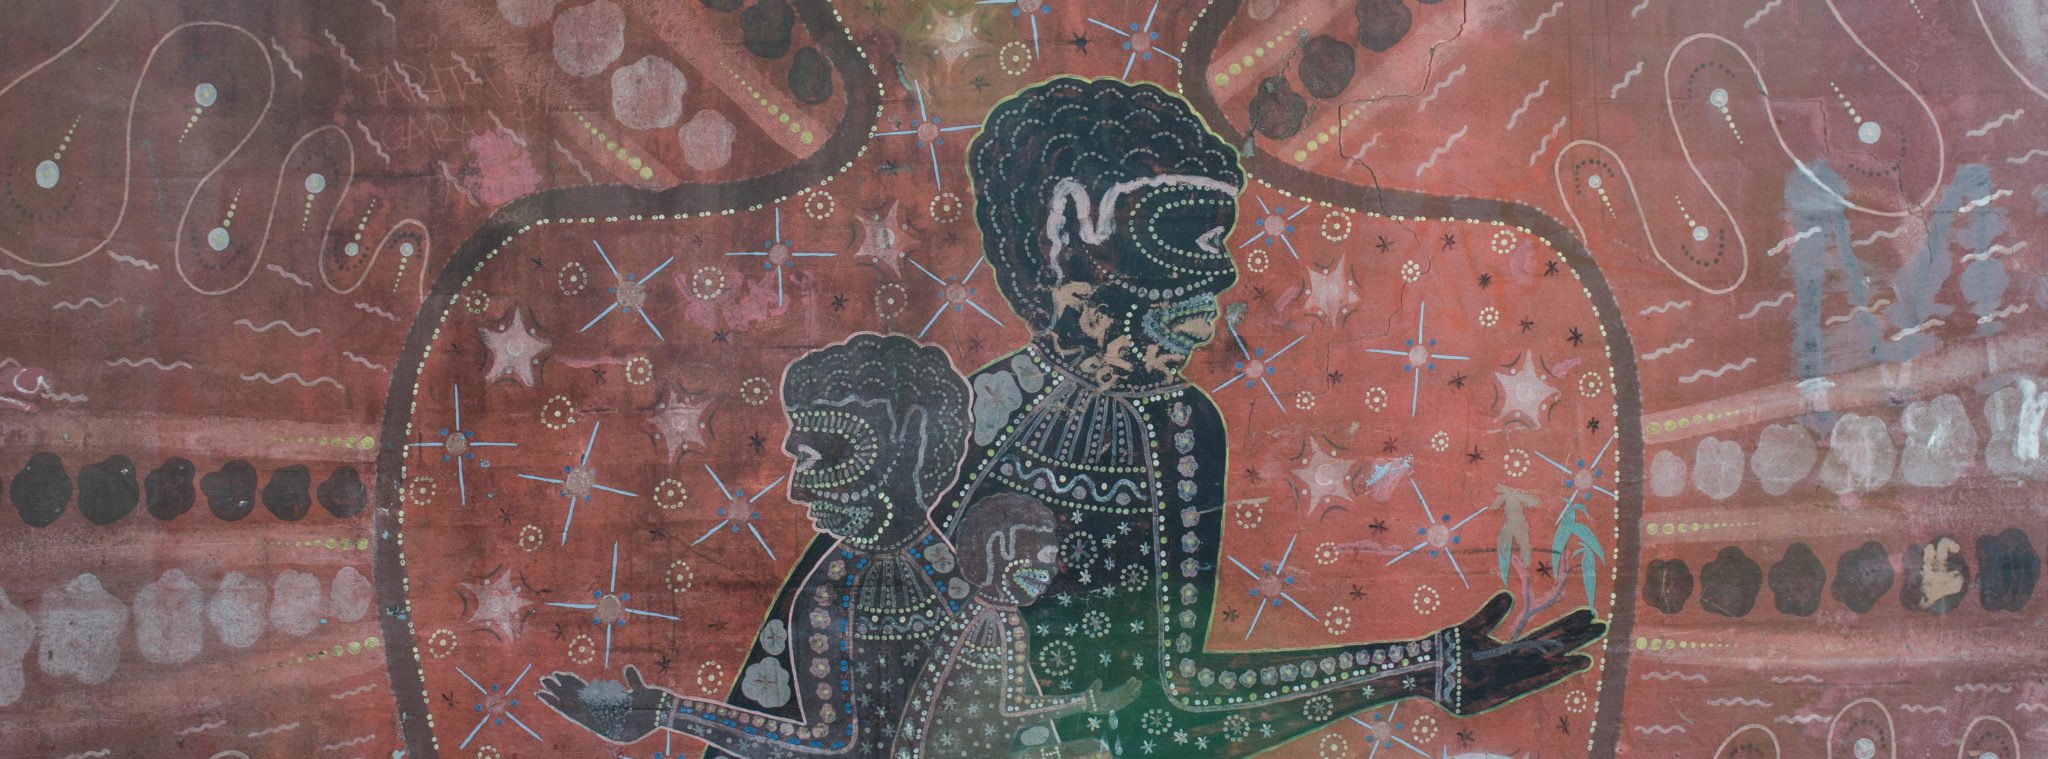 Redfern Sydney: The various painting in Redfern tell the Aboriginal history